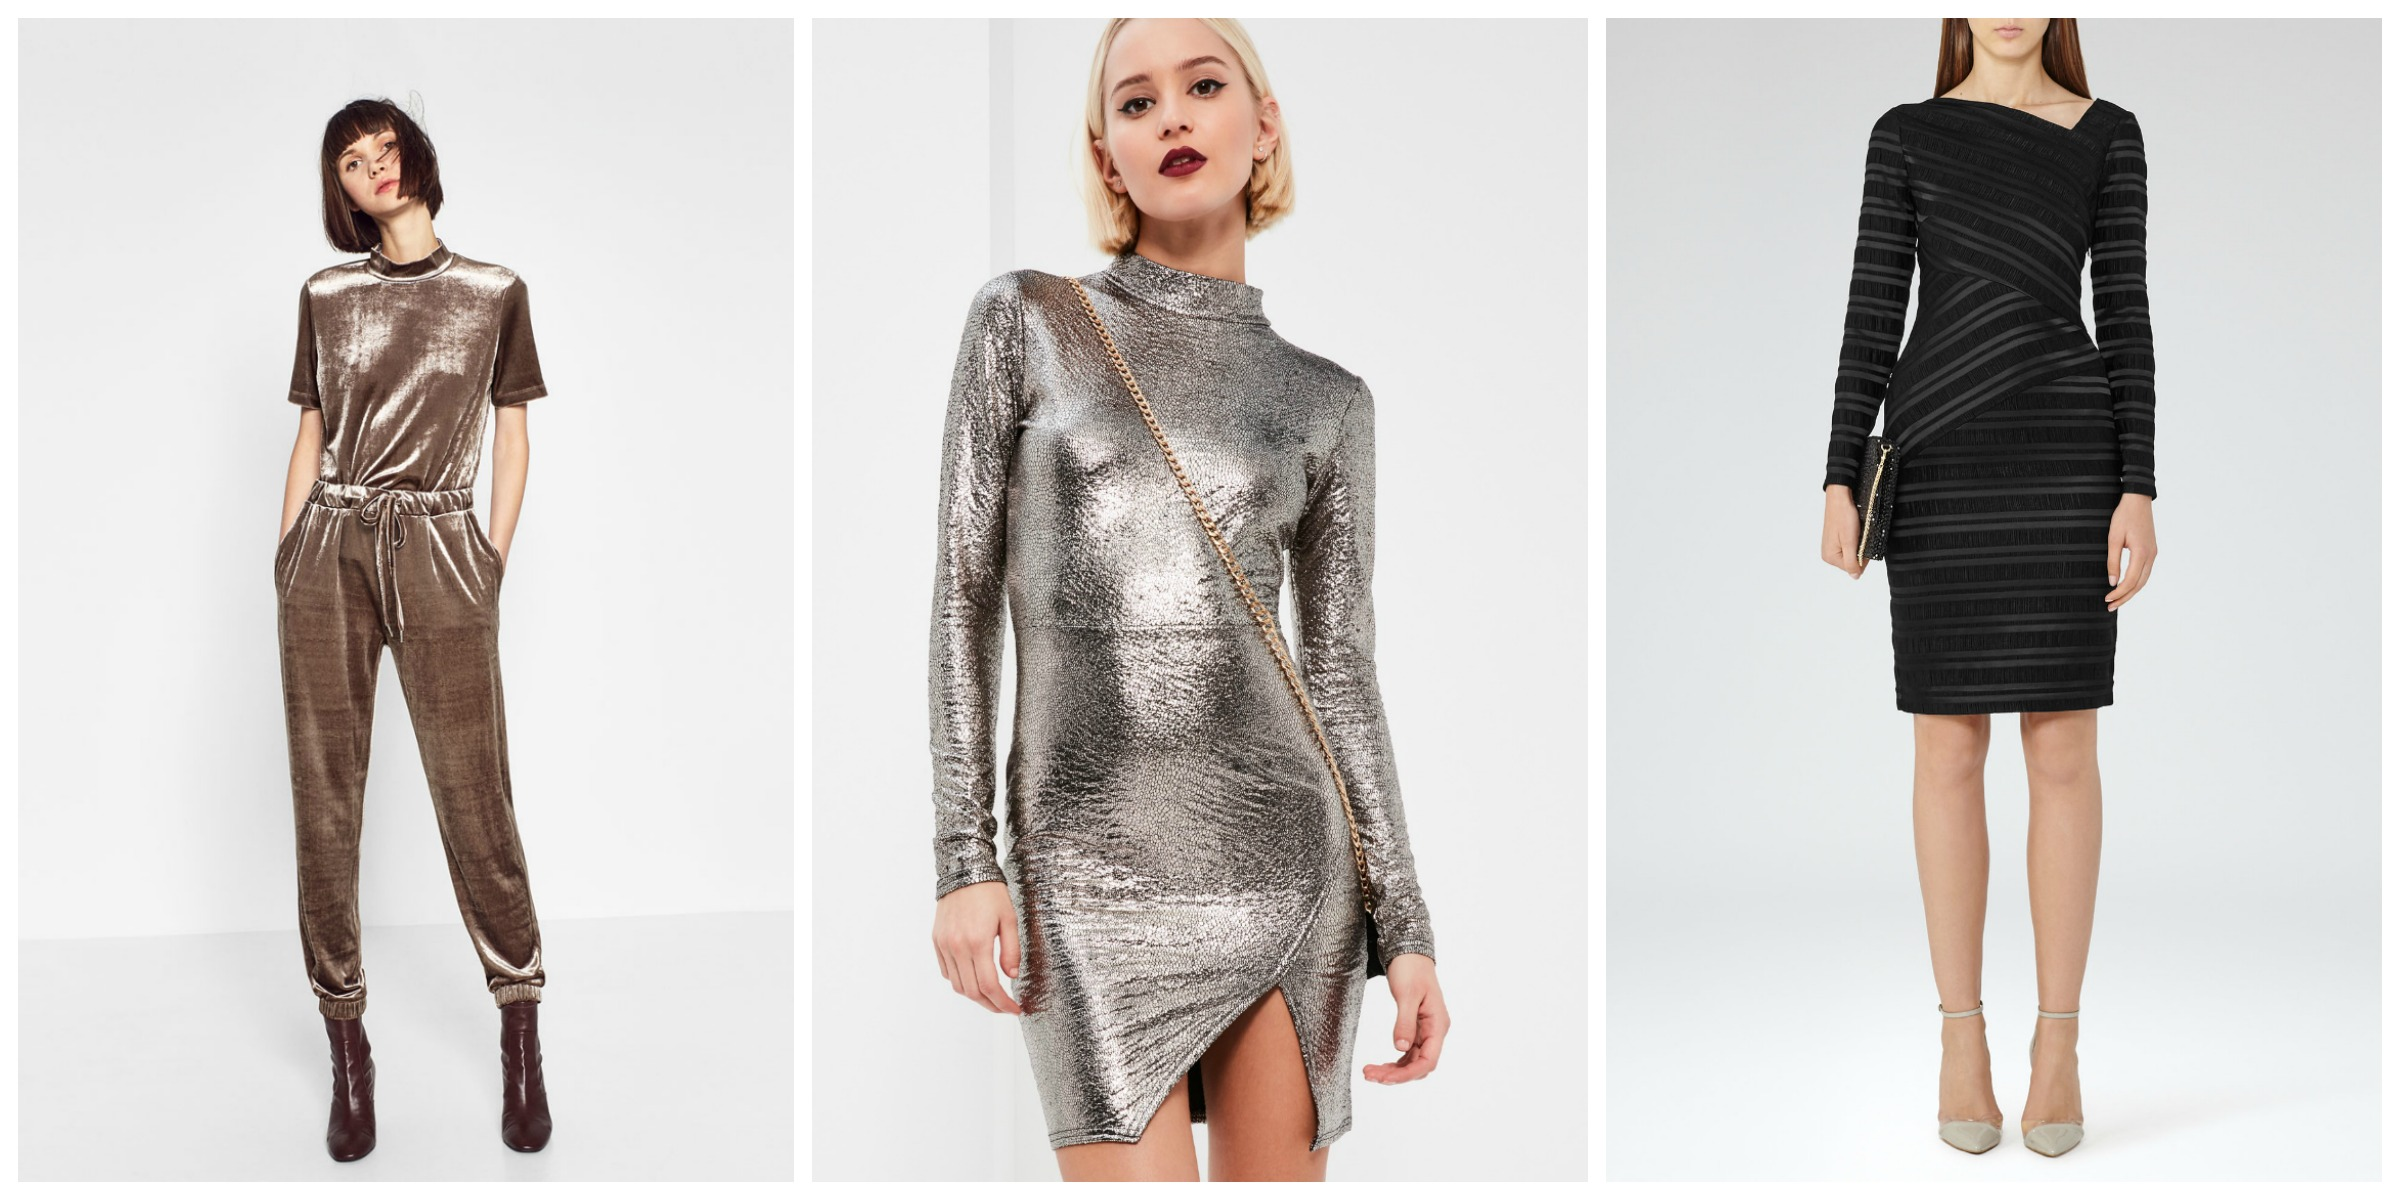 velvet-metallic-striped-outfits New Year's Eve